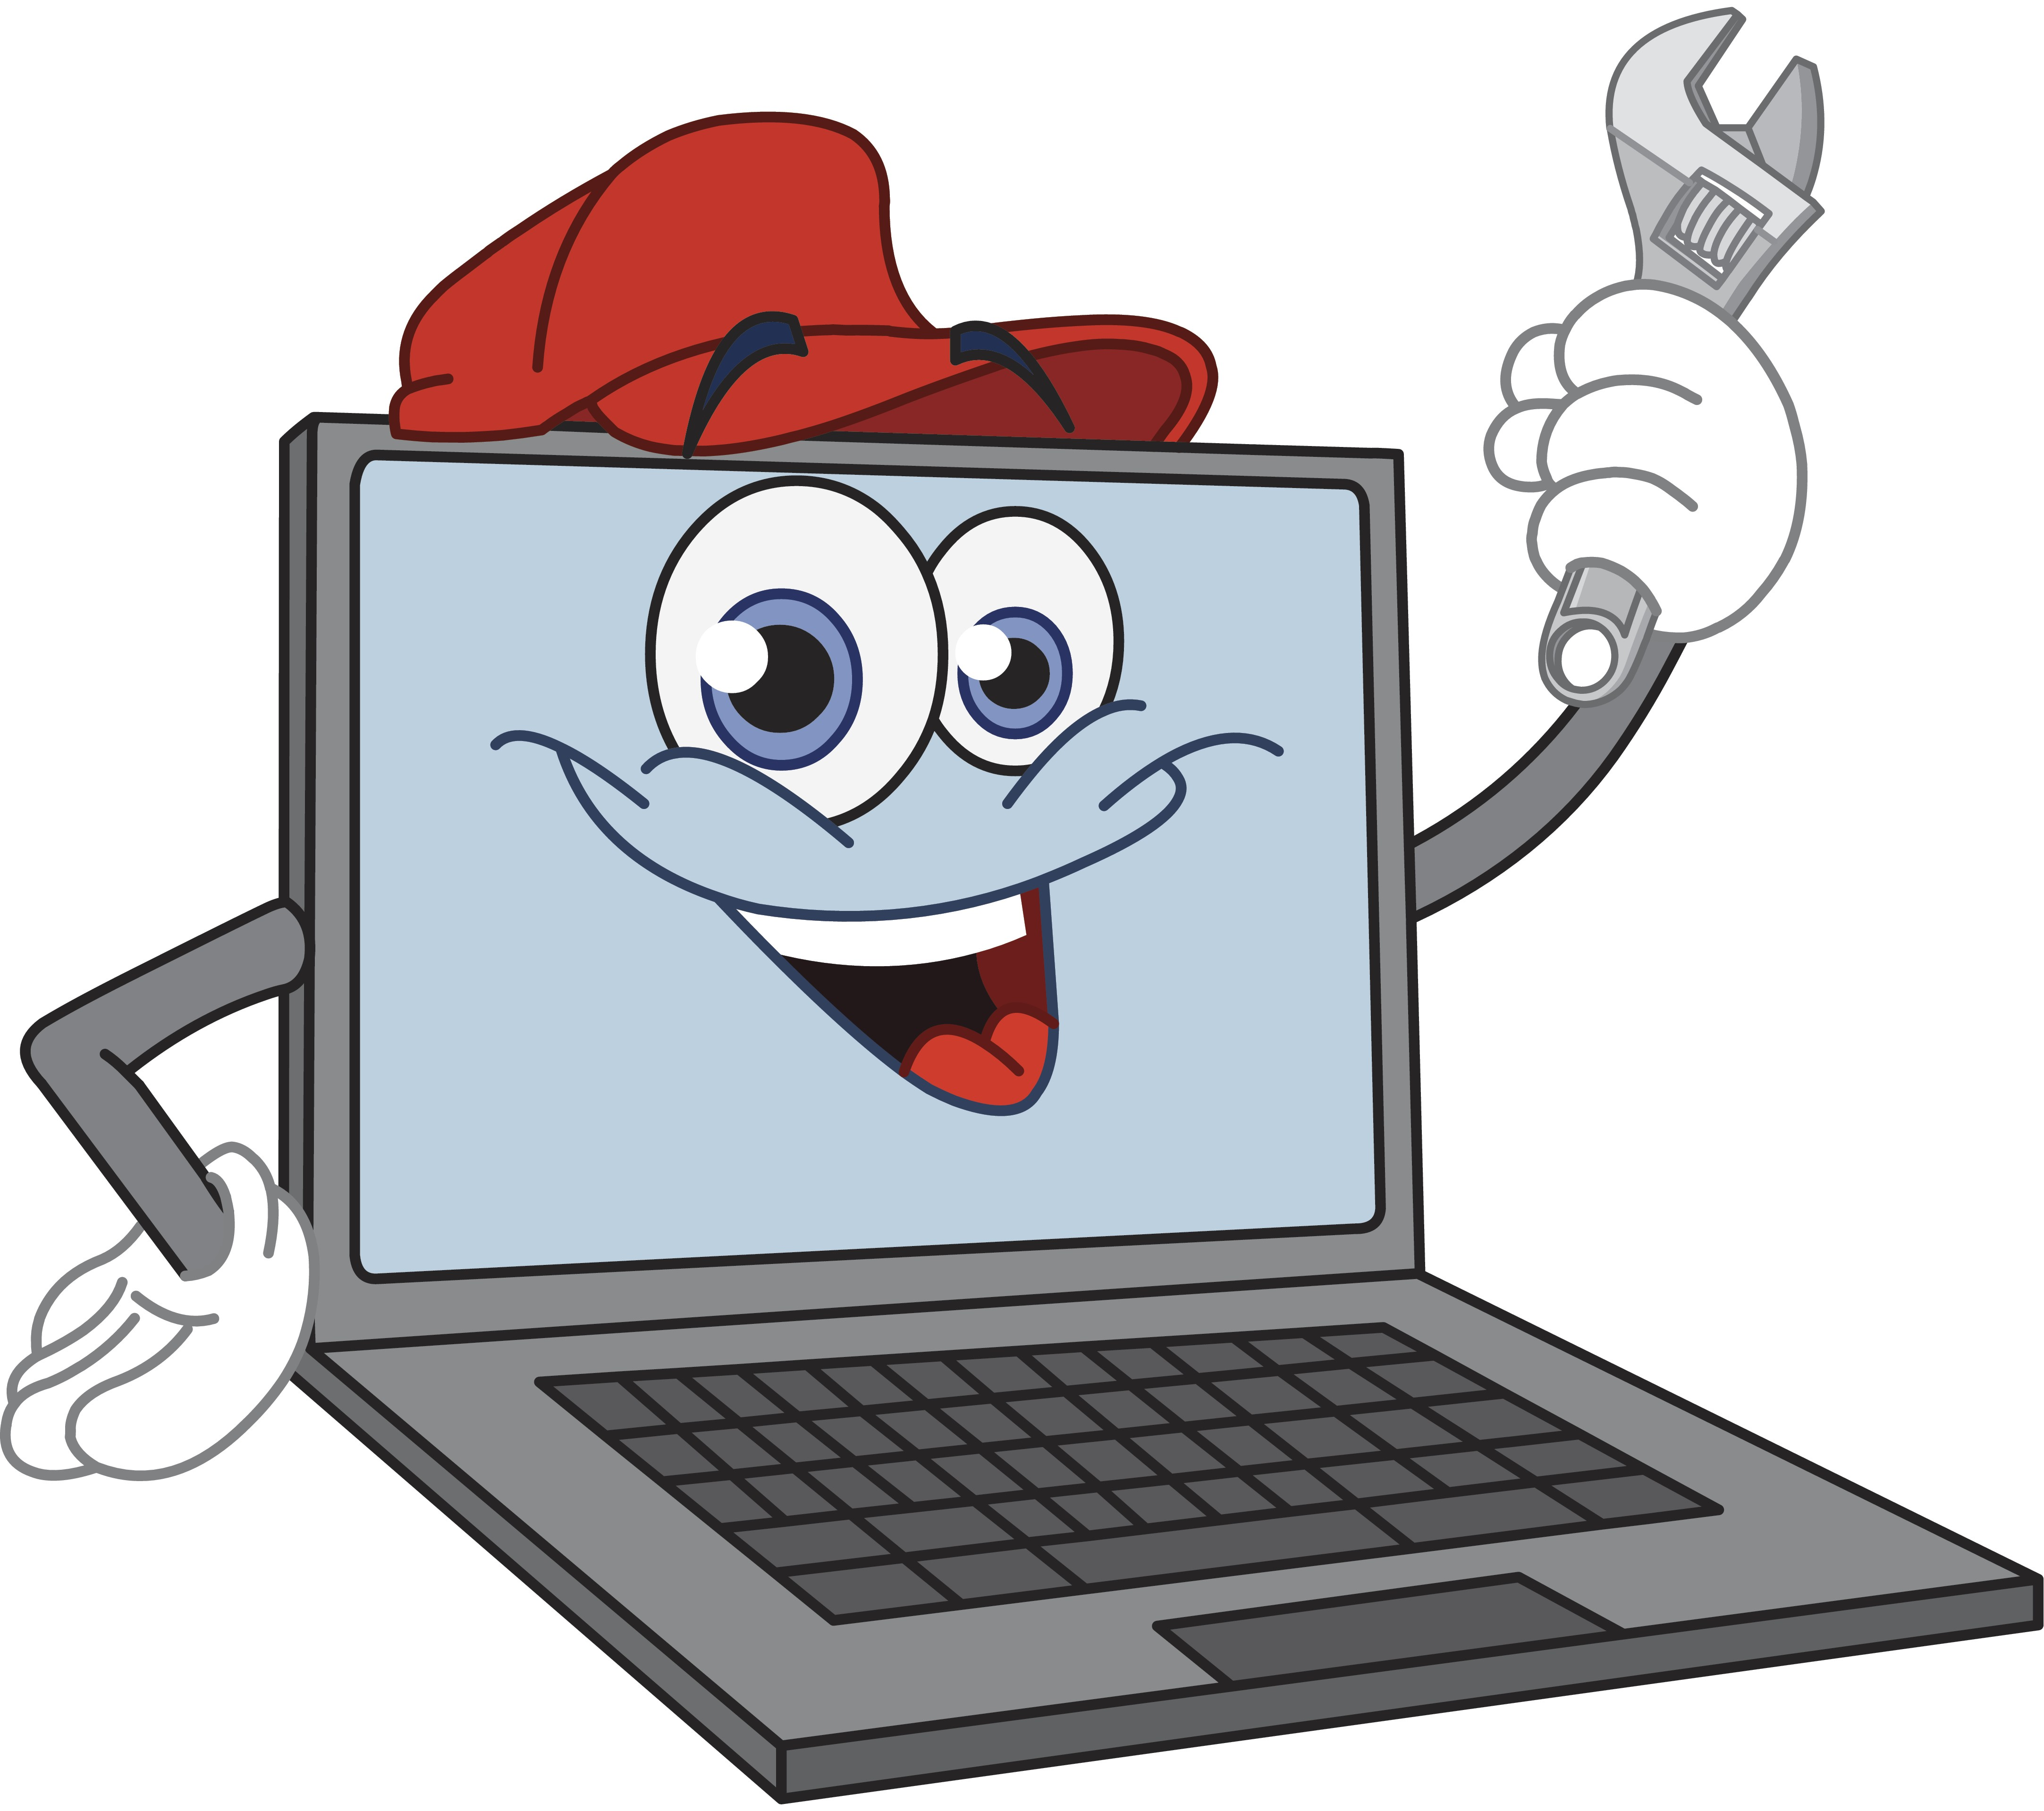 Laptop Repair in Dubai Jebel Ali 056 1875525, FREE VISIT ***.